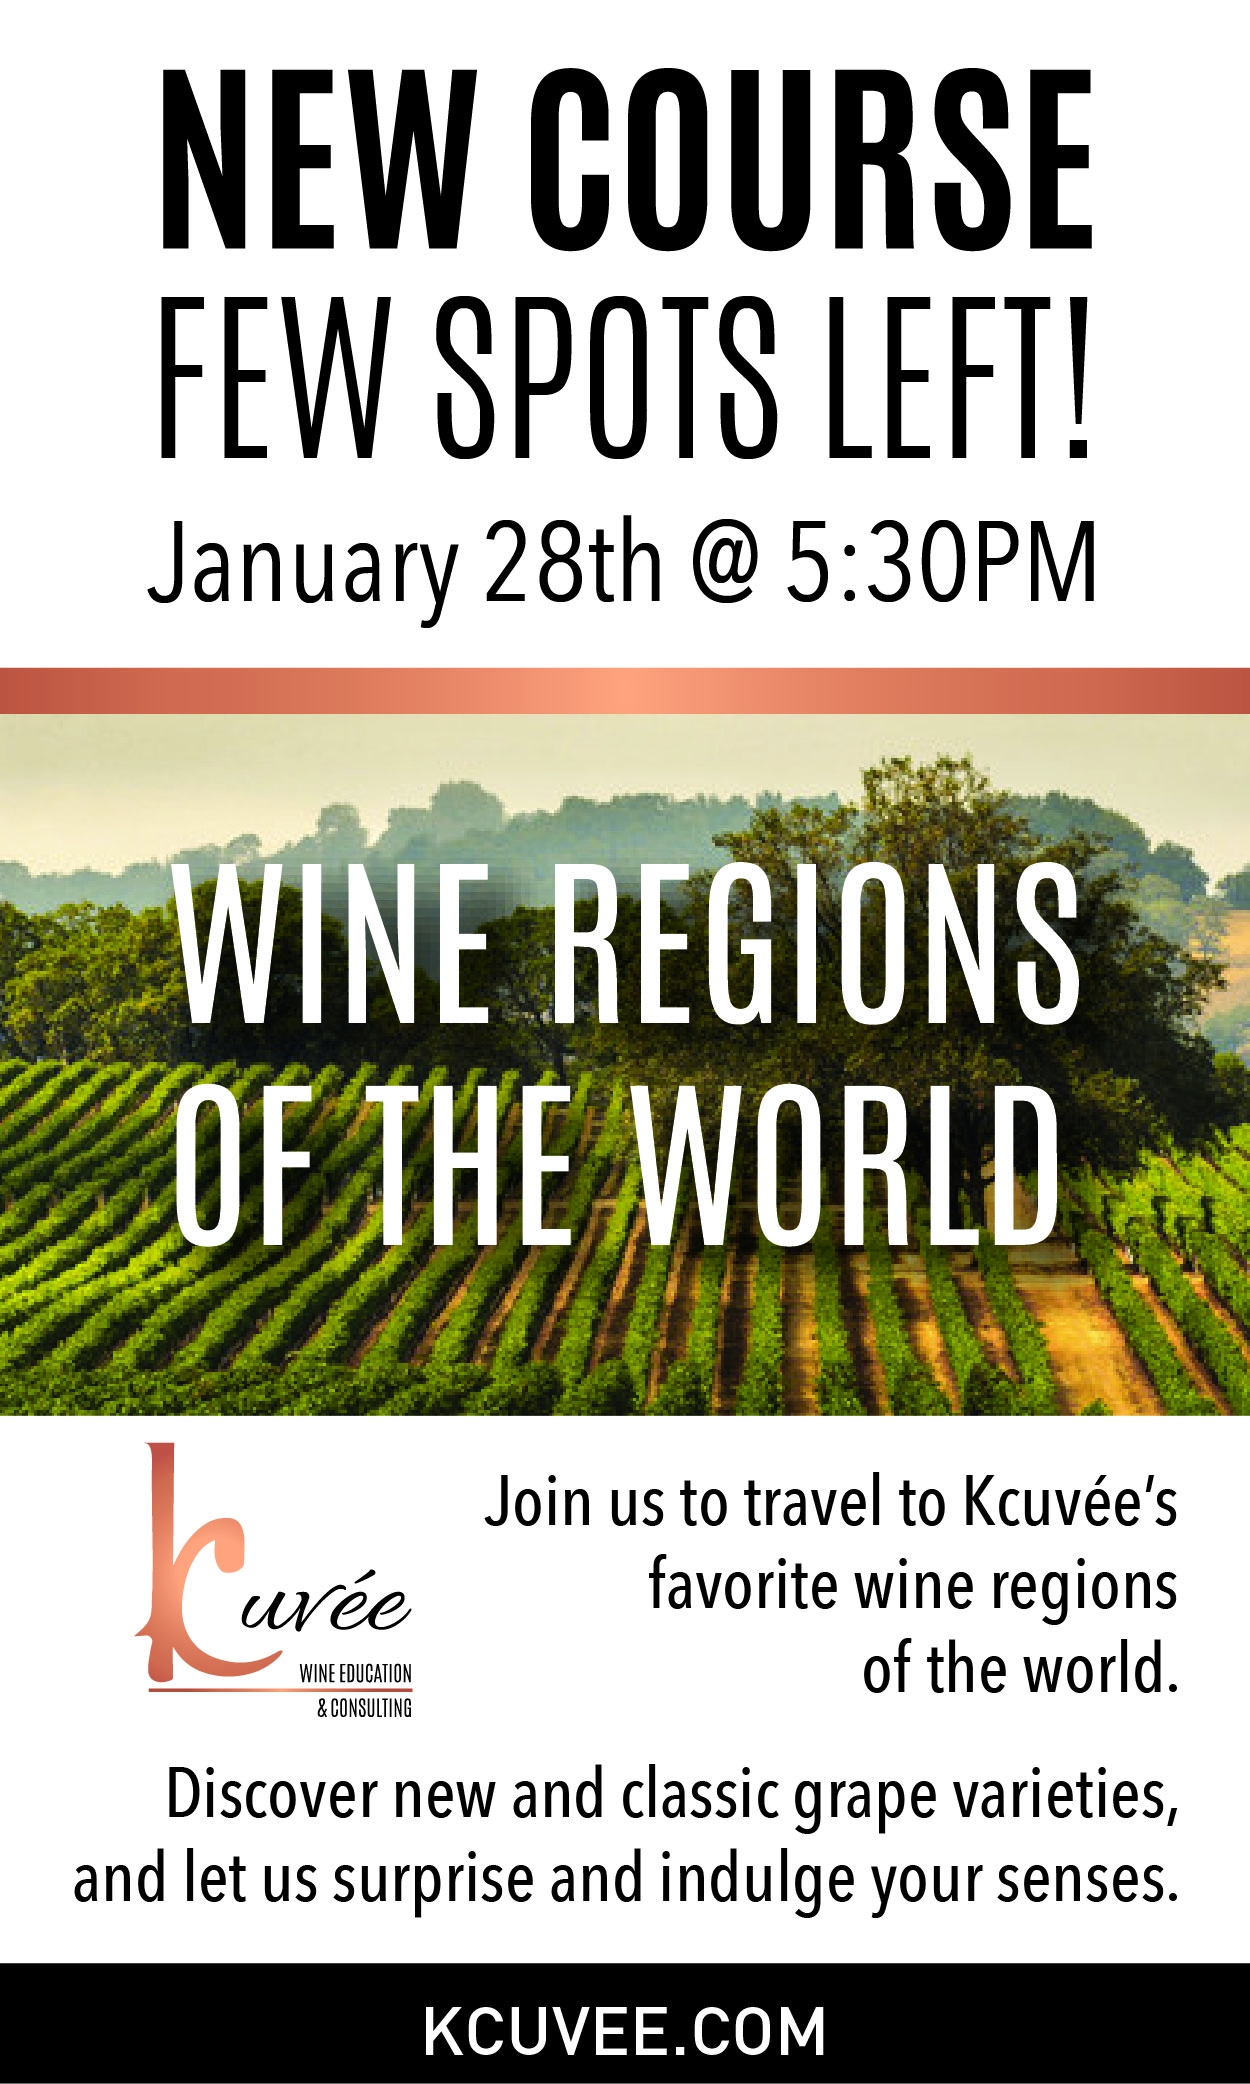 Kcuvee Tastychomps Wine Regions of the World Post